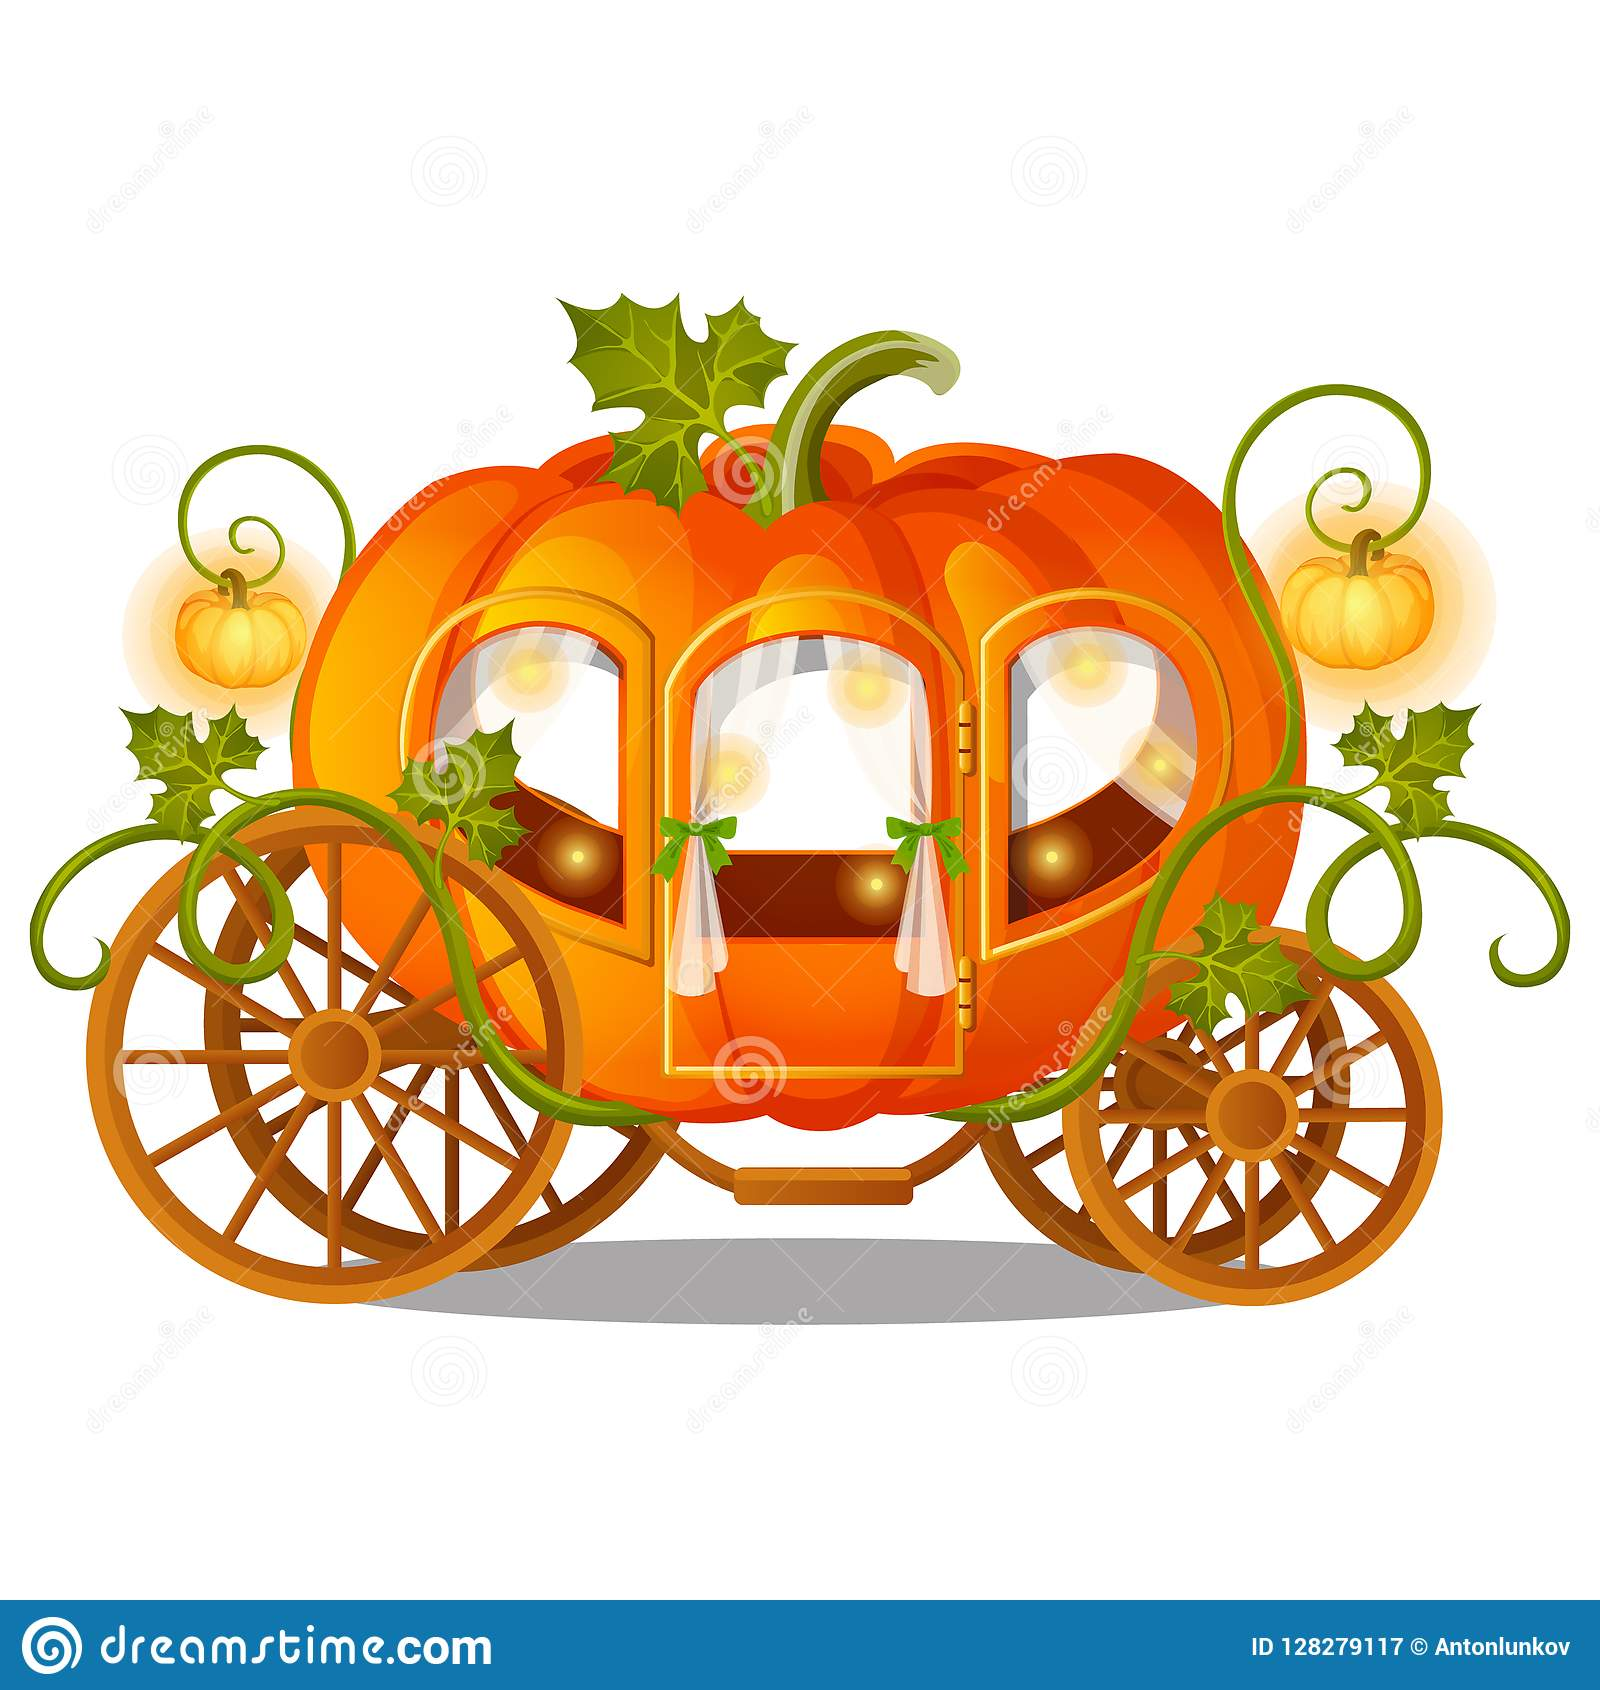 Vintage horse carriage of pumpkin with florid ornament isolated on white background. Sketch for a poster or card for the